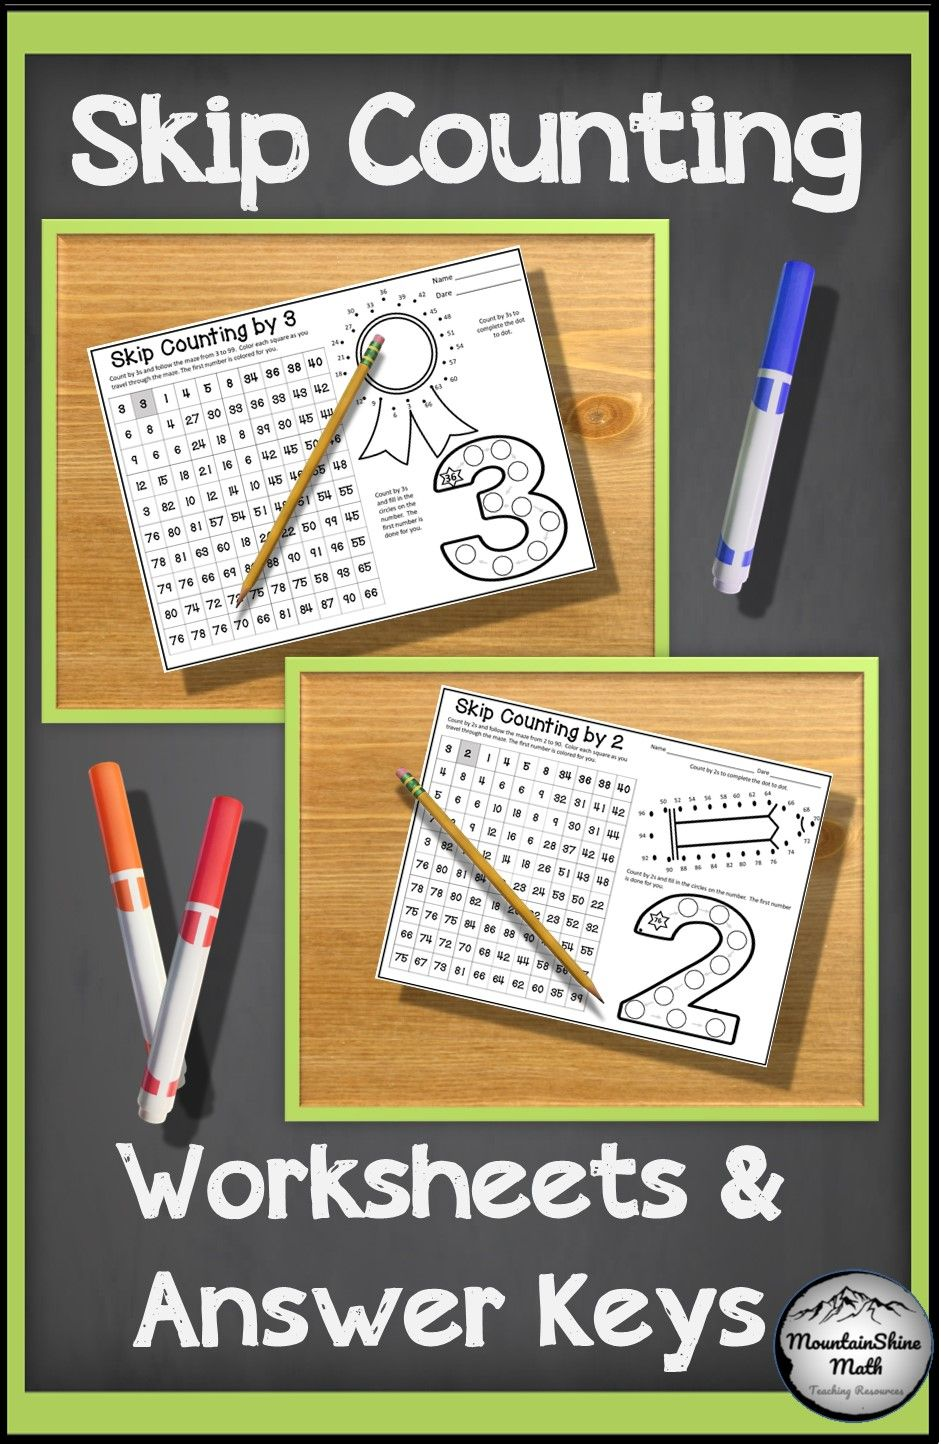 Sip Counting Worksheets Always Come In Handy To Check For Mastery These Worksheets Add A Little Fu Skip Counting Counting Worksheets Skip Counting Worksheets [ 1444 x 941 Pixel ]